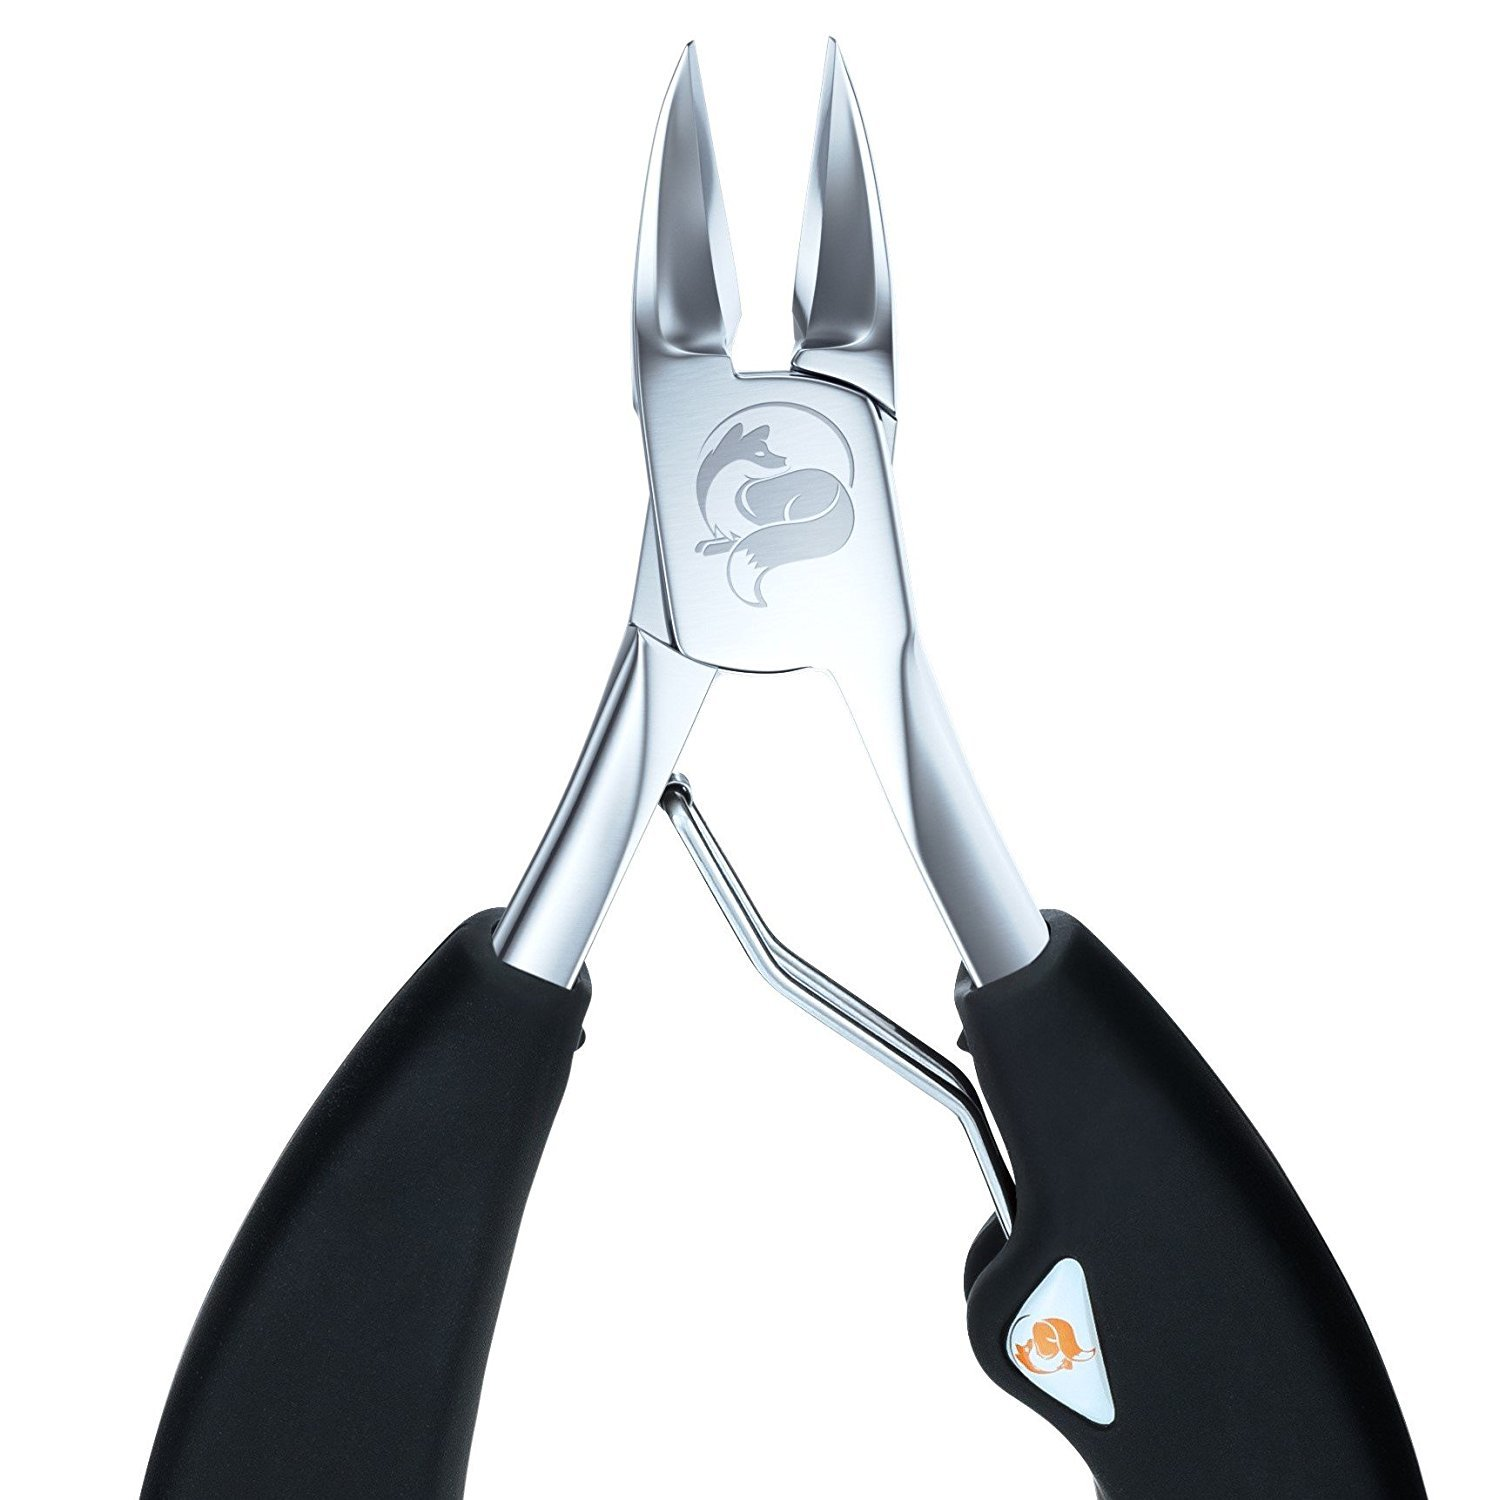 The Original Soft Grip Toenail Clippers by Fox Medical - Surgical Grade Stainless Steel Nail Nippers